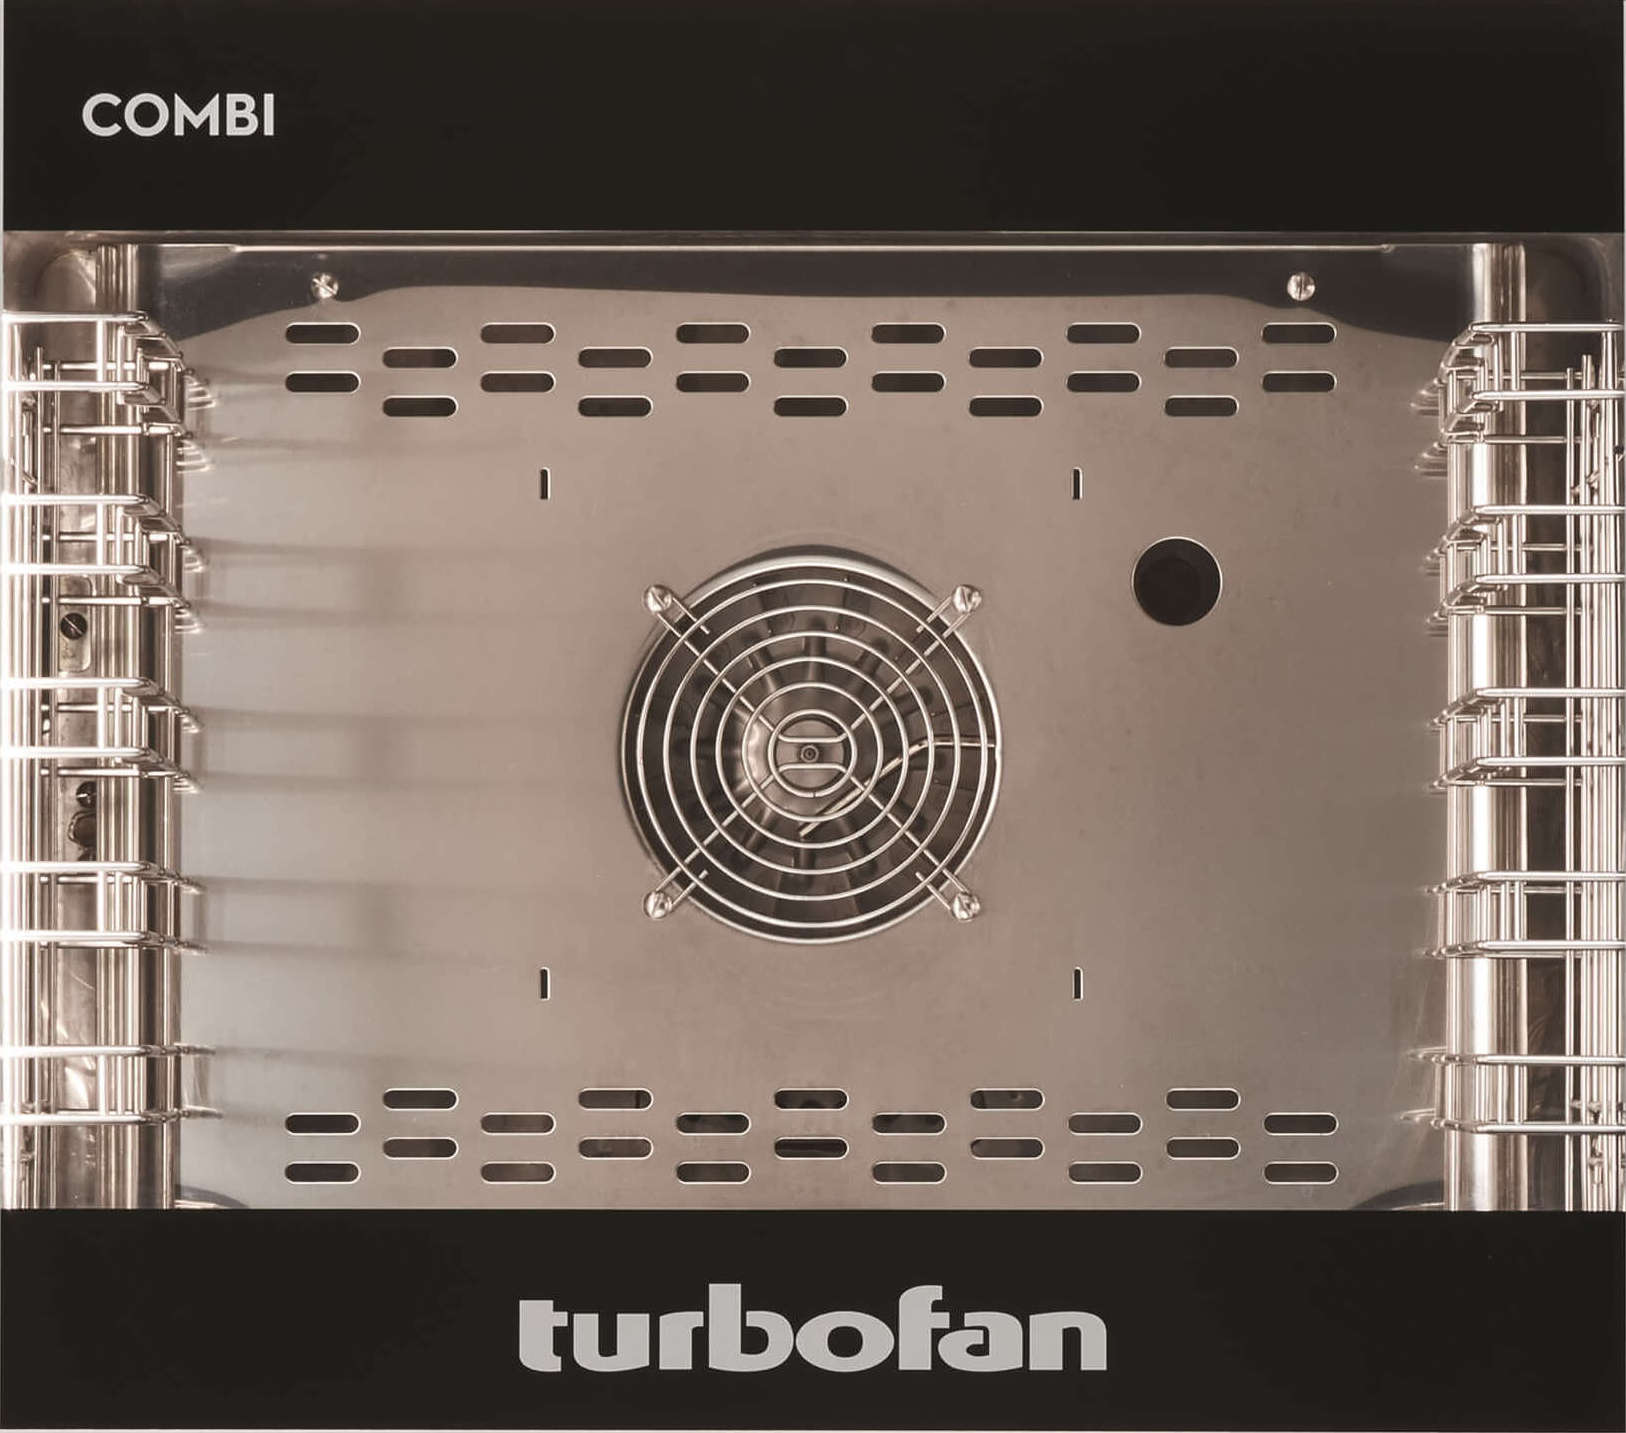 Blue Seal Turbofan Combi DSK405 Double Stacking Kit